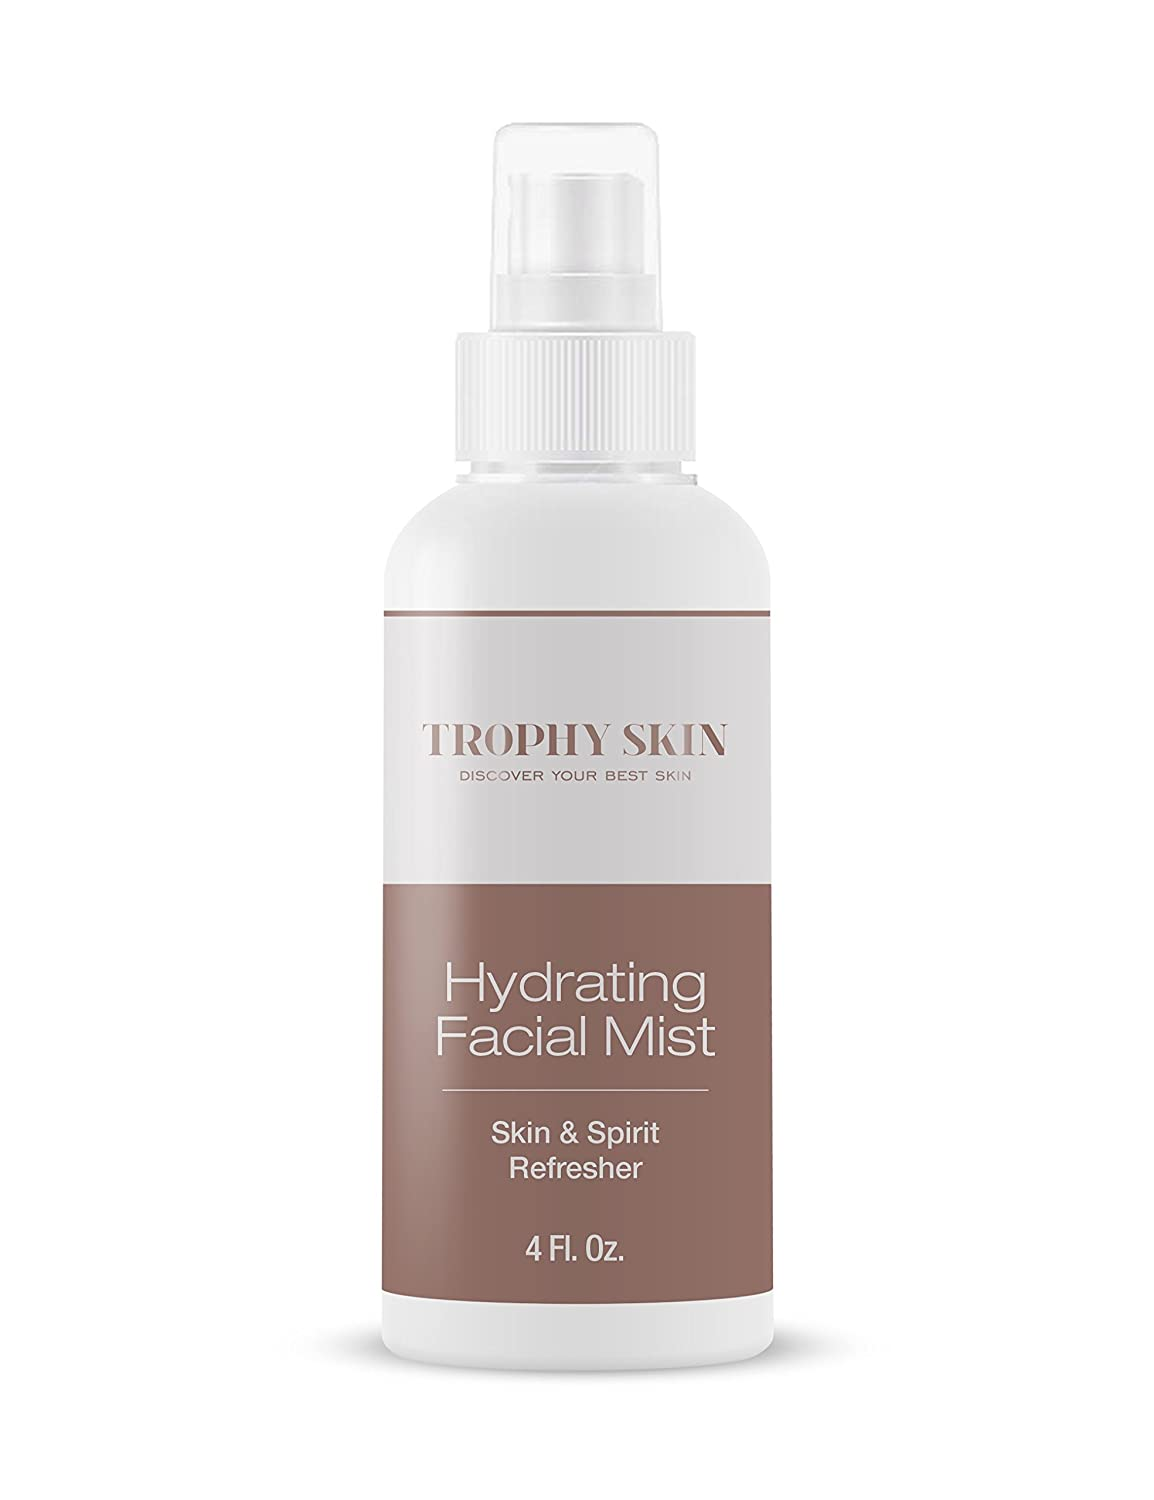 Facial Hydrating Mist by Trophy Skin. Prepares Skin to Increase the Absorption of Serums and Moisturizers.